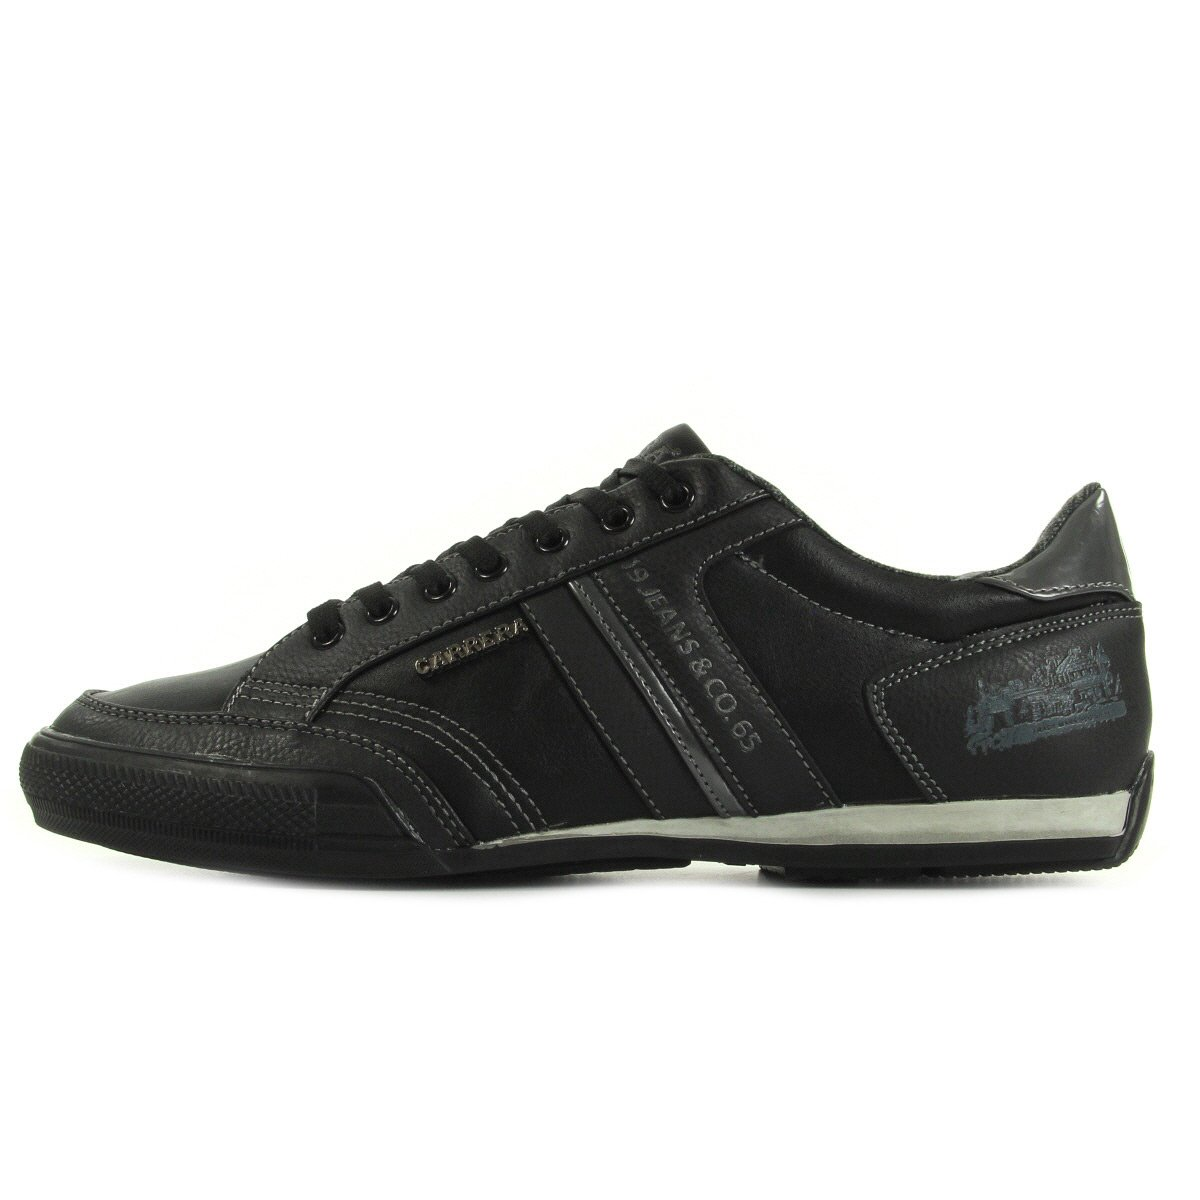 Carrera Jeans New Galles Vintage CAF62700804, Turnschuhe